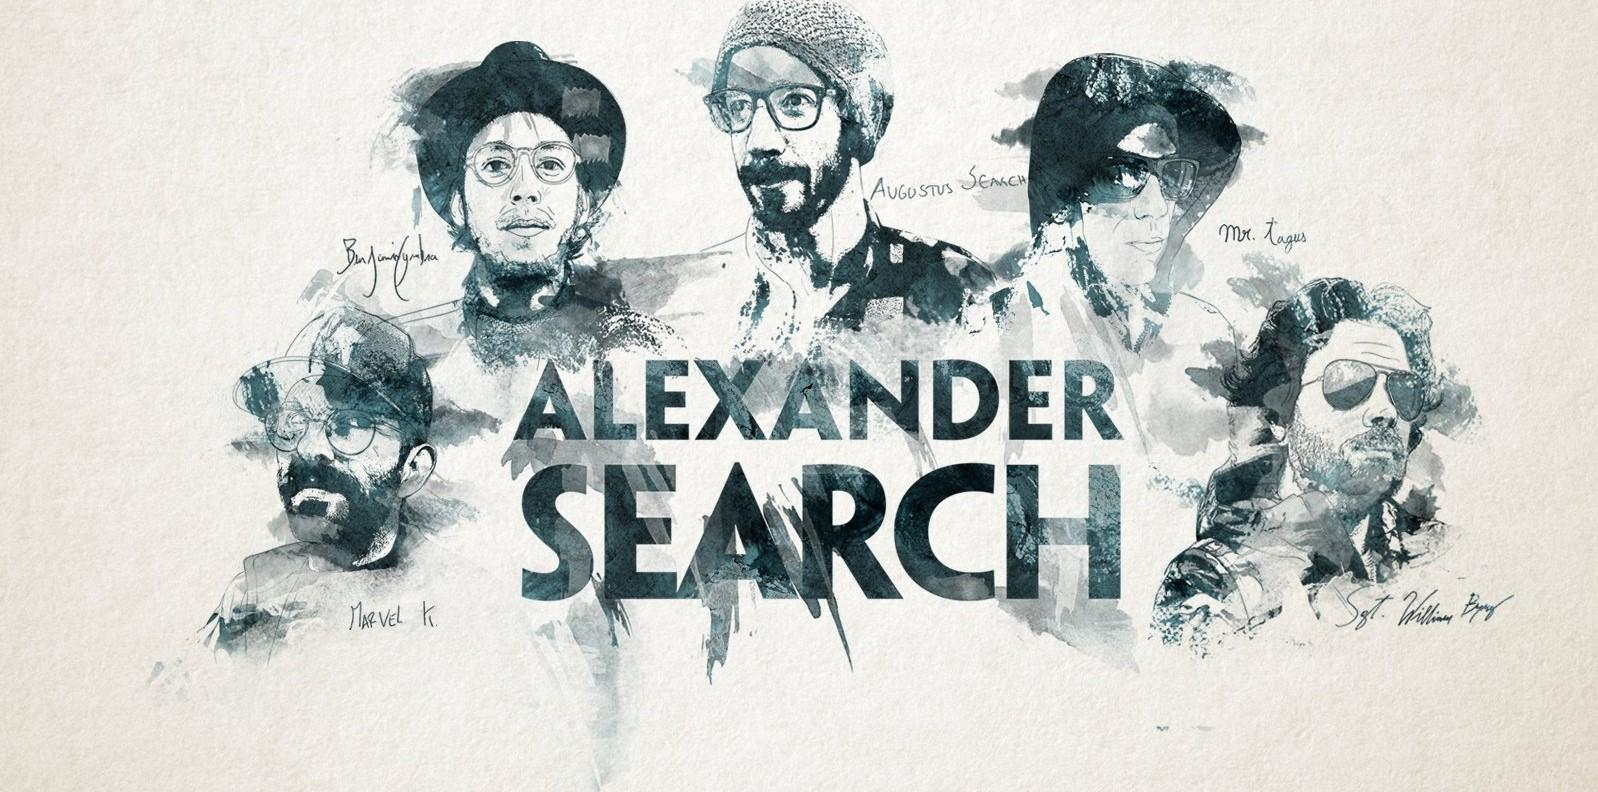 Alexander Search: The Marriage of Music with the Multiplicity of Being